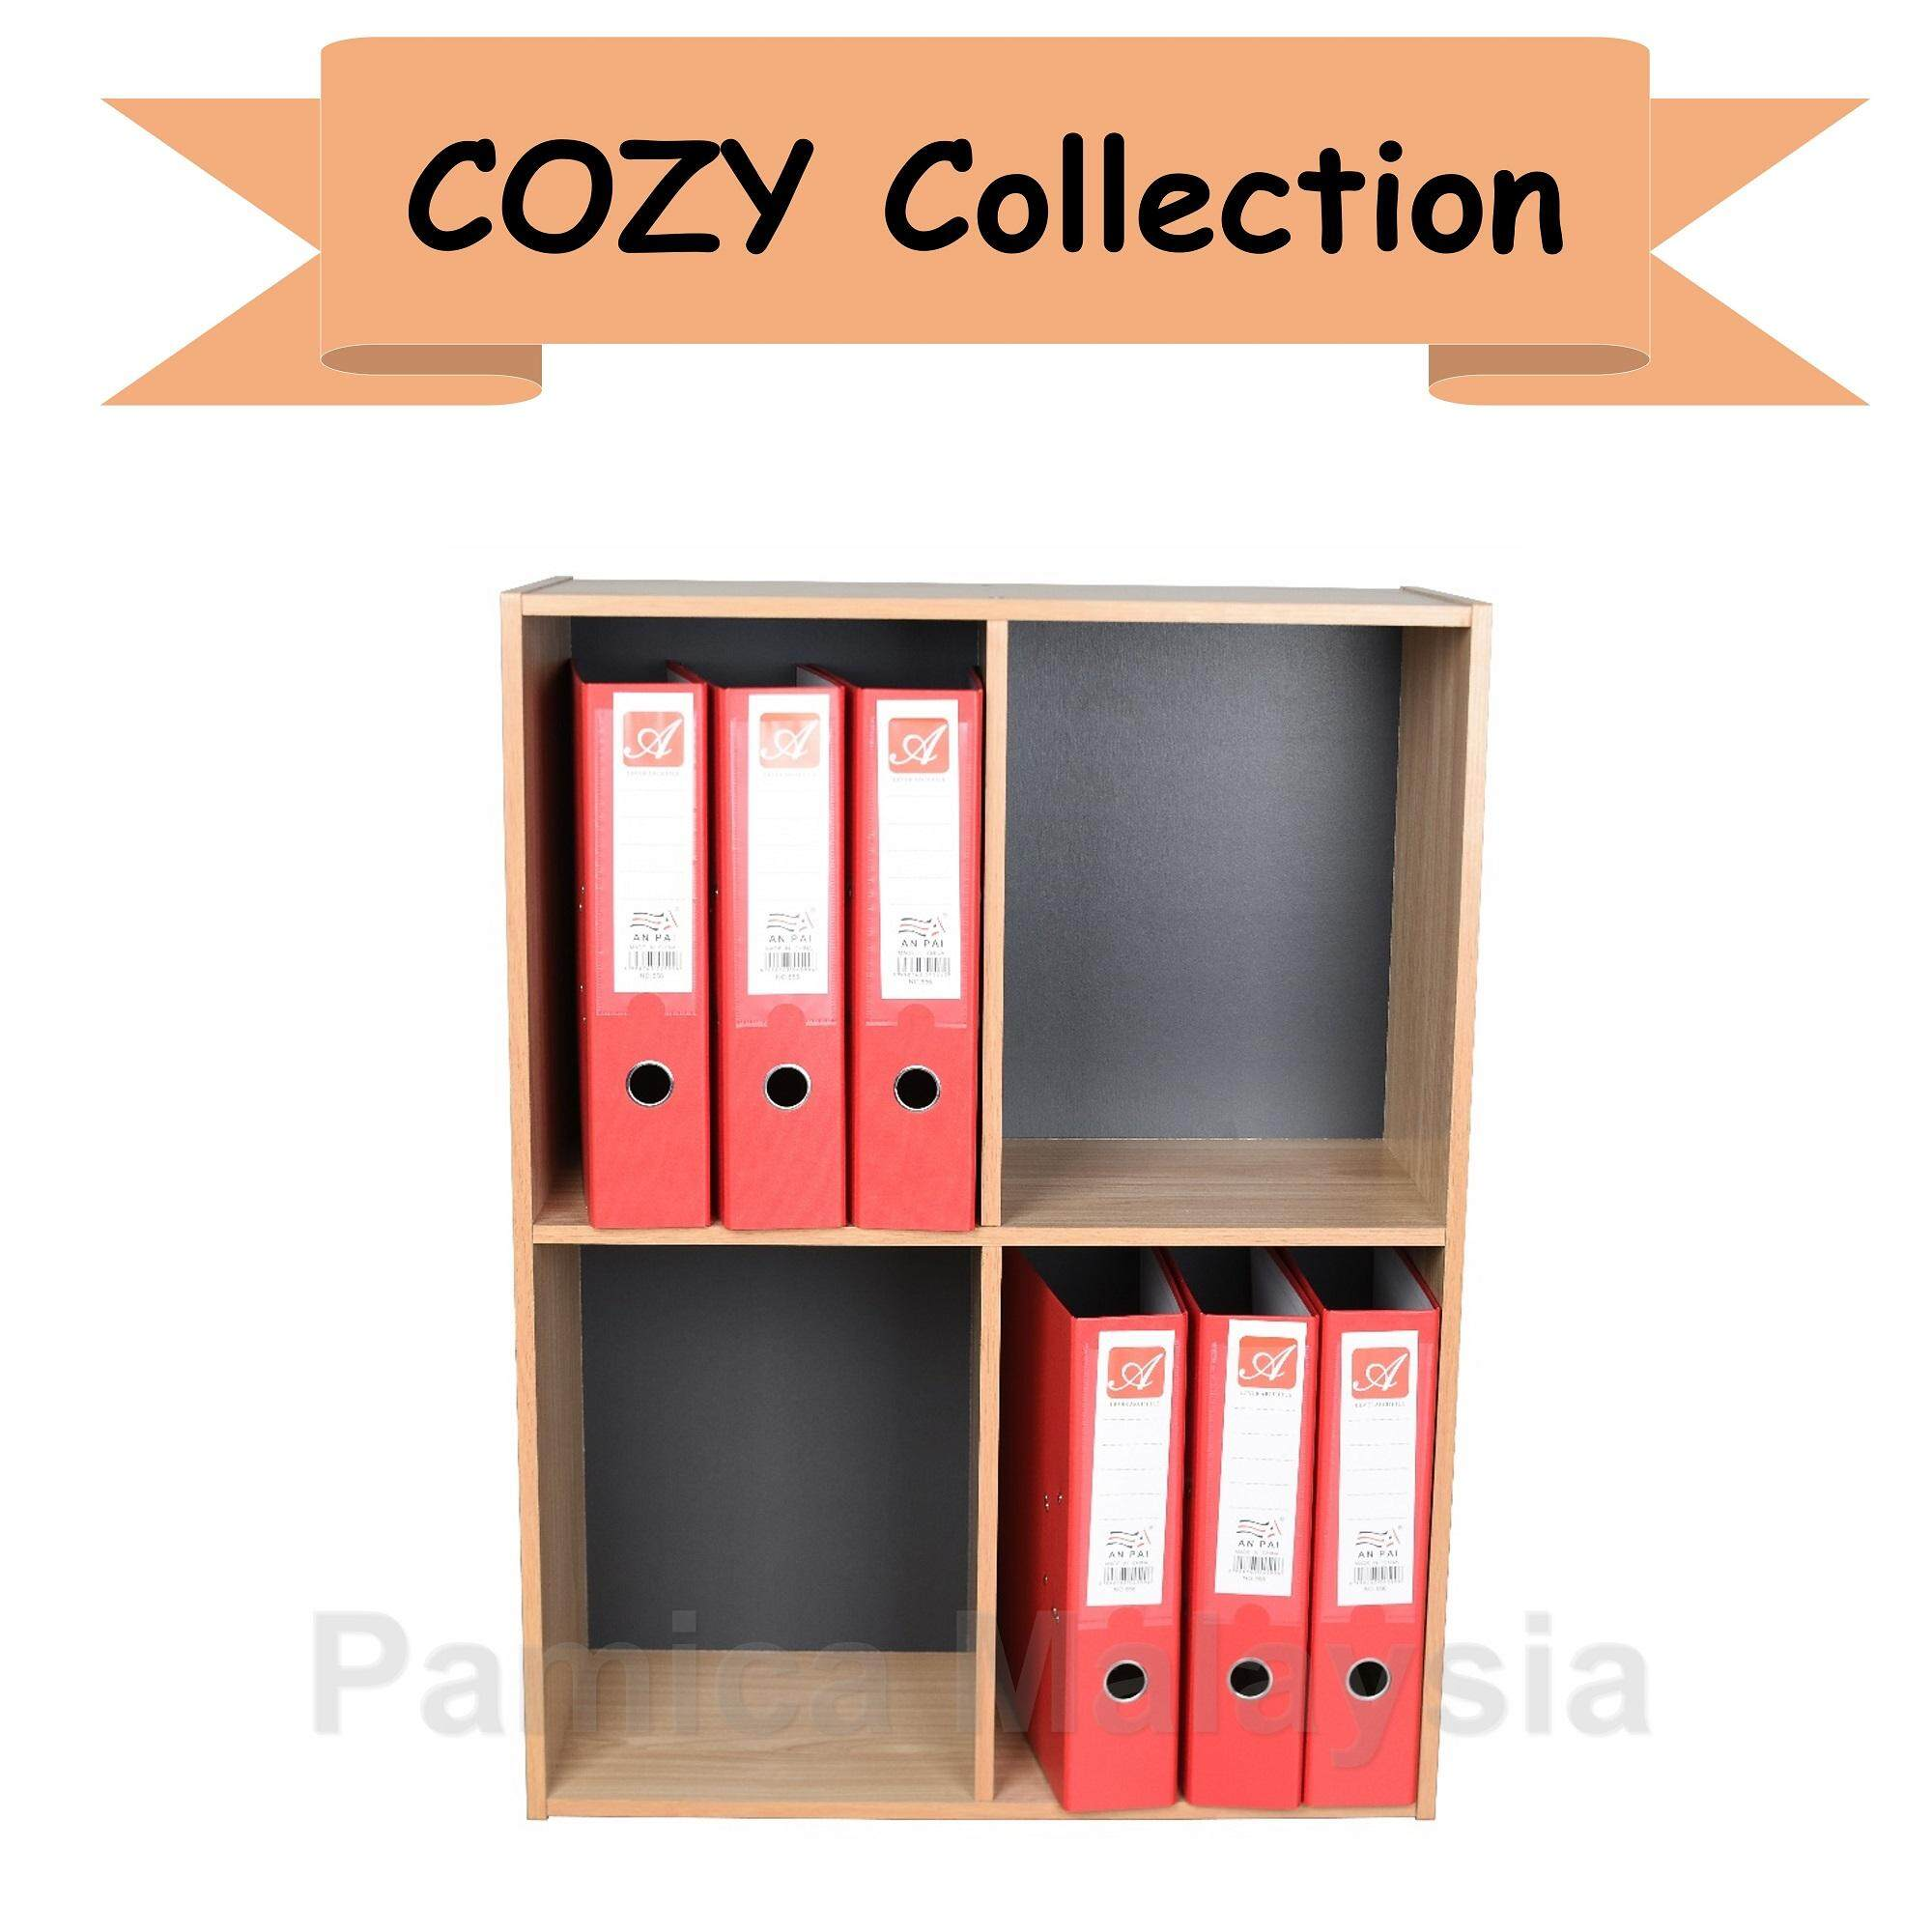 PAMICA SV6047 Cozy 4-Compartment Storage Shelf in Oak/Dark Grey Finished